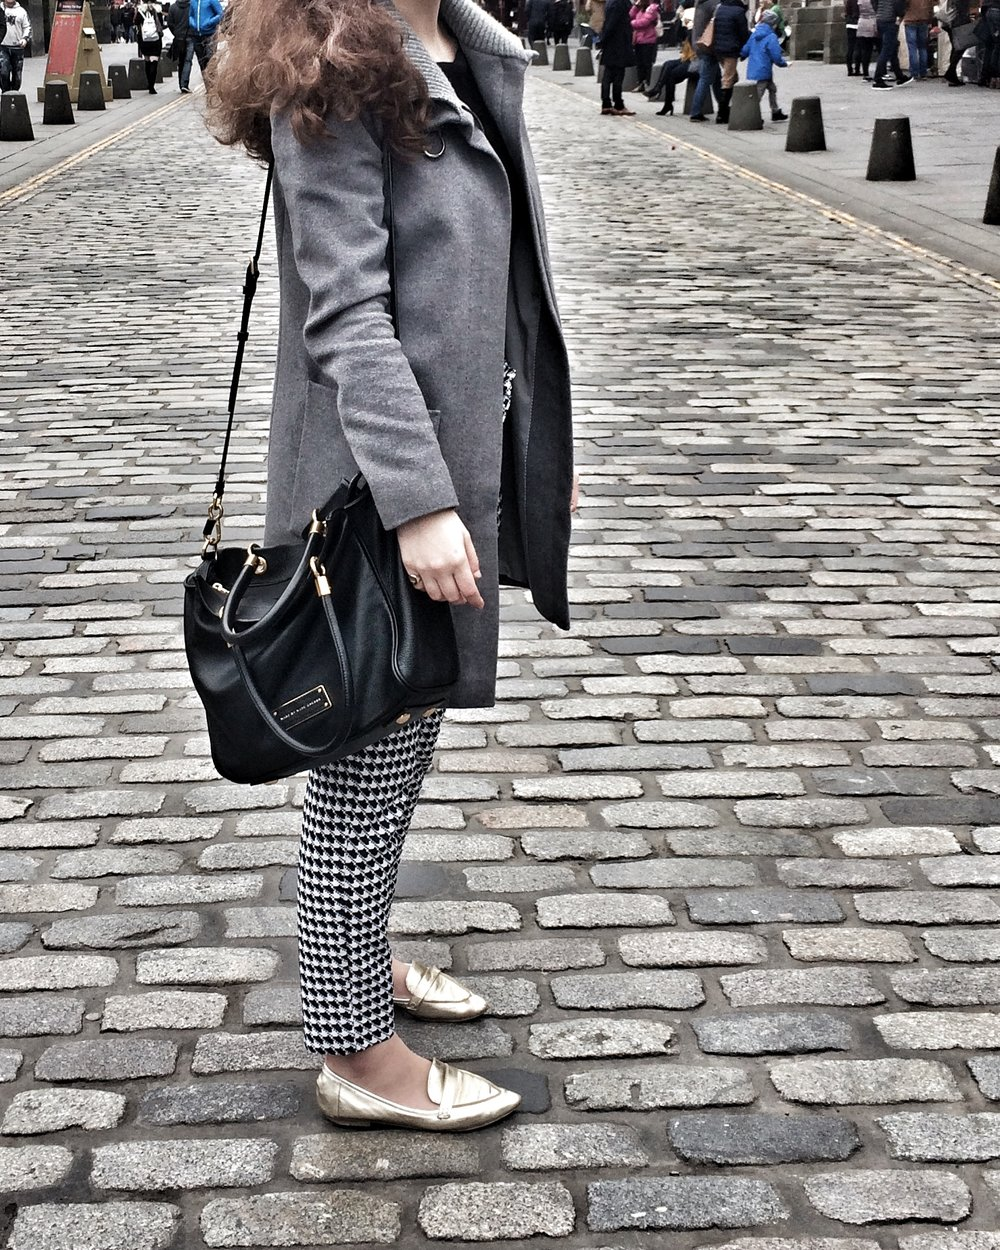 St Emile Coat, Topshop Loafers, Asos Top, (Similar) Zara Trousers (Similar) Marc by Marc Jacobs Shoulder Bag  (Similar)